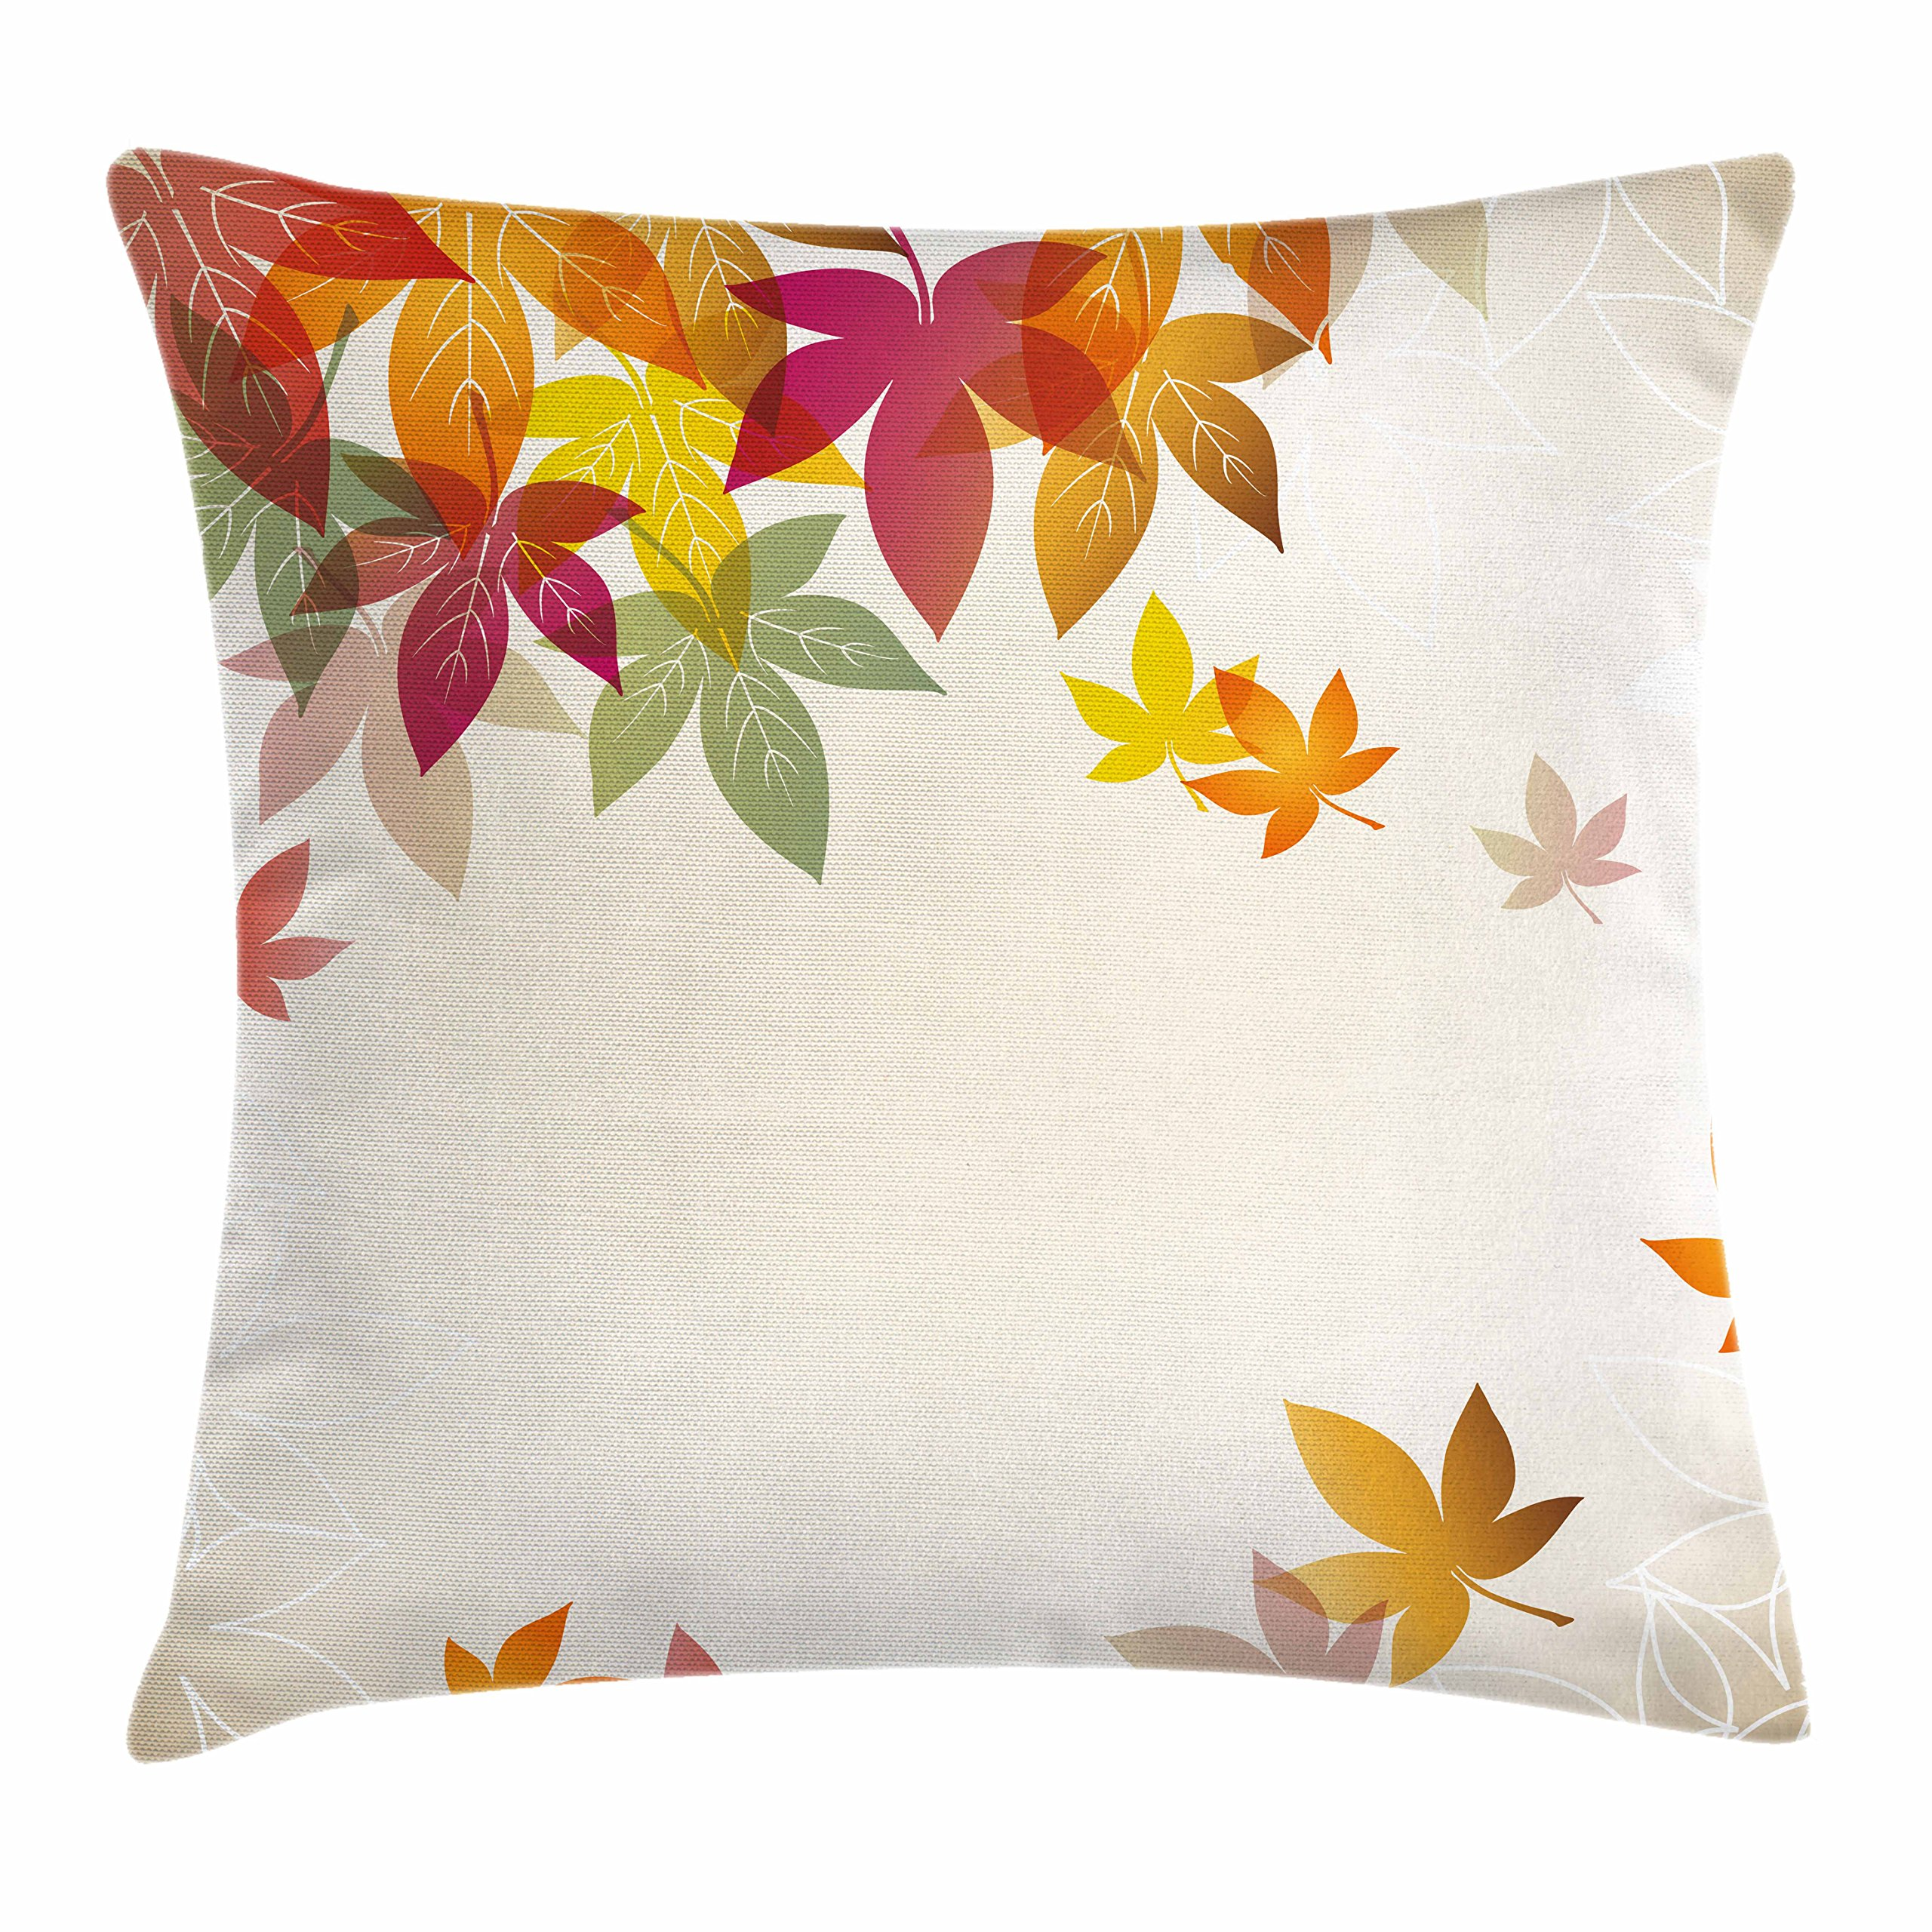 Ambesonne Fall Decorations Throw Pillow Cushion Cover, Silhouettes of Maple Tree Leaves in Pastel Classical Shady Nature Graphic Image, Decorative Square Accent Pillow Case, 20 X 20 Inches, Multi